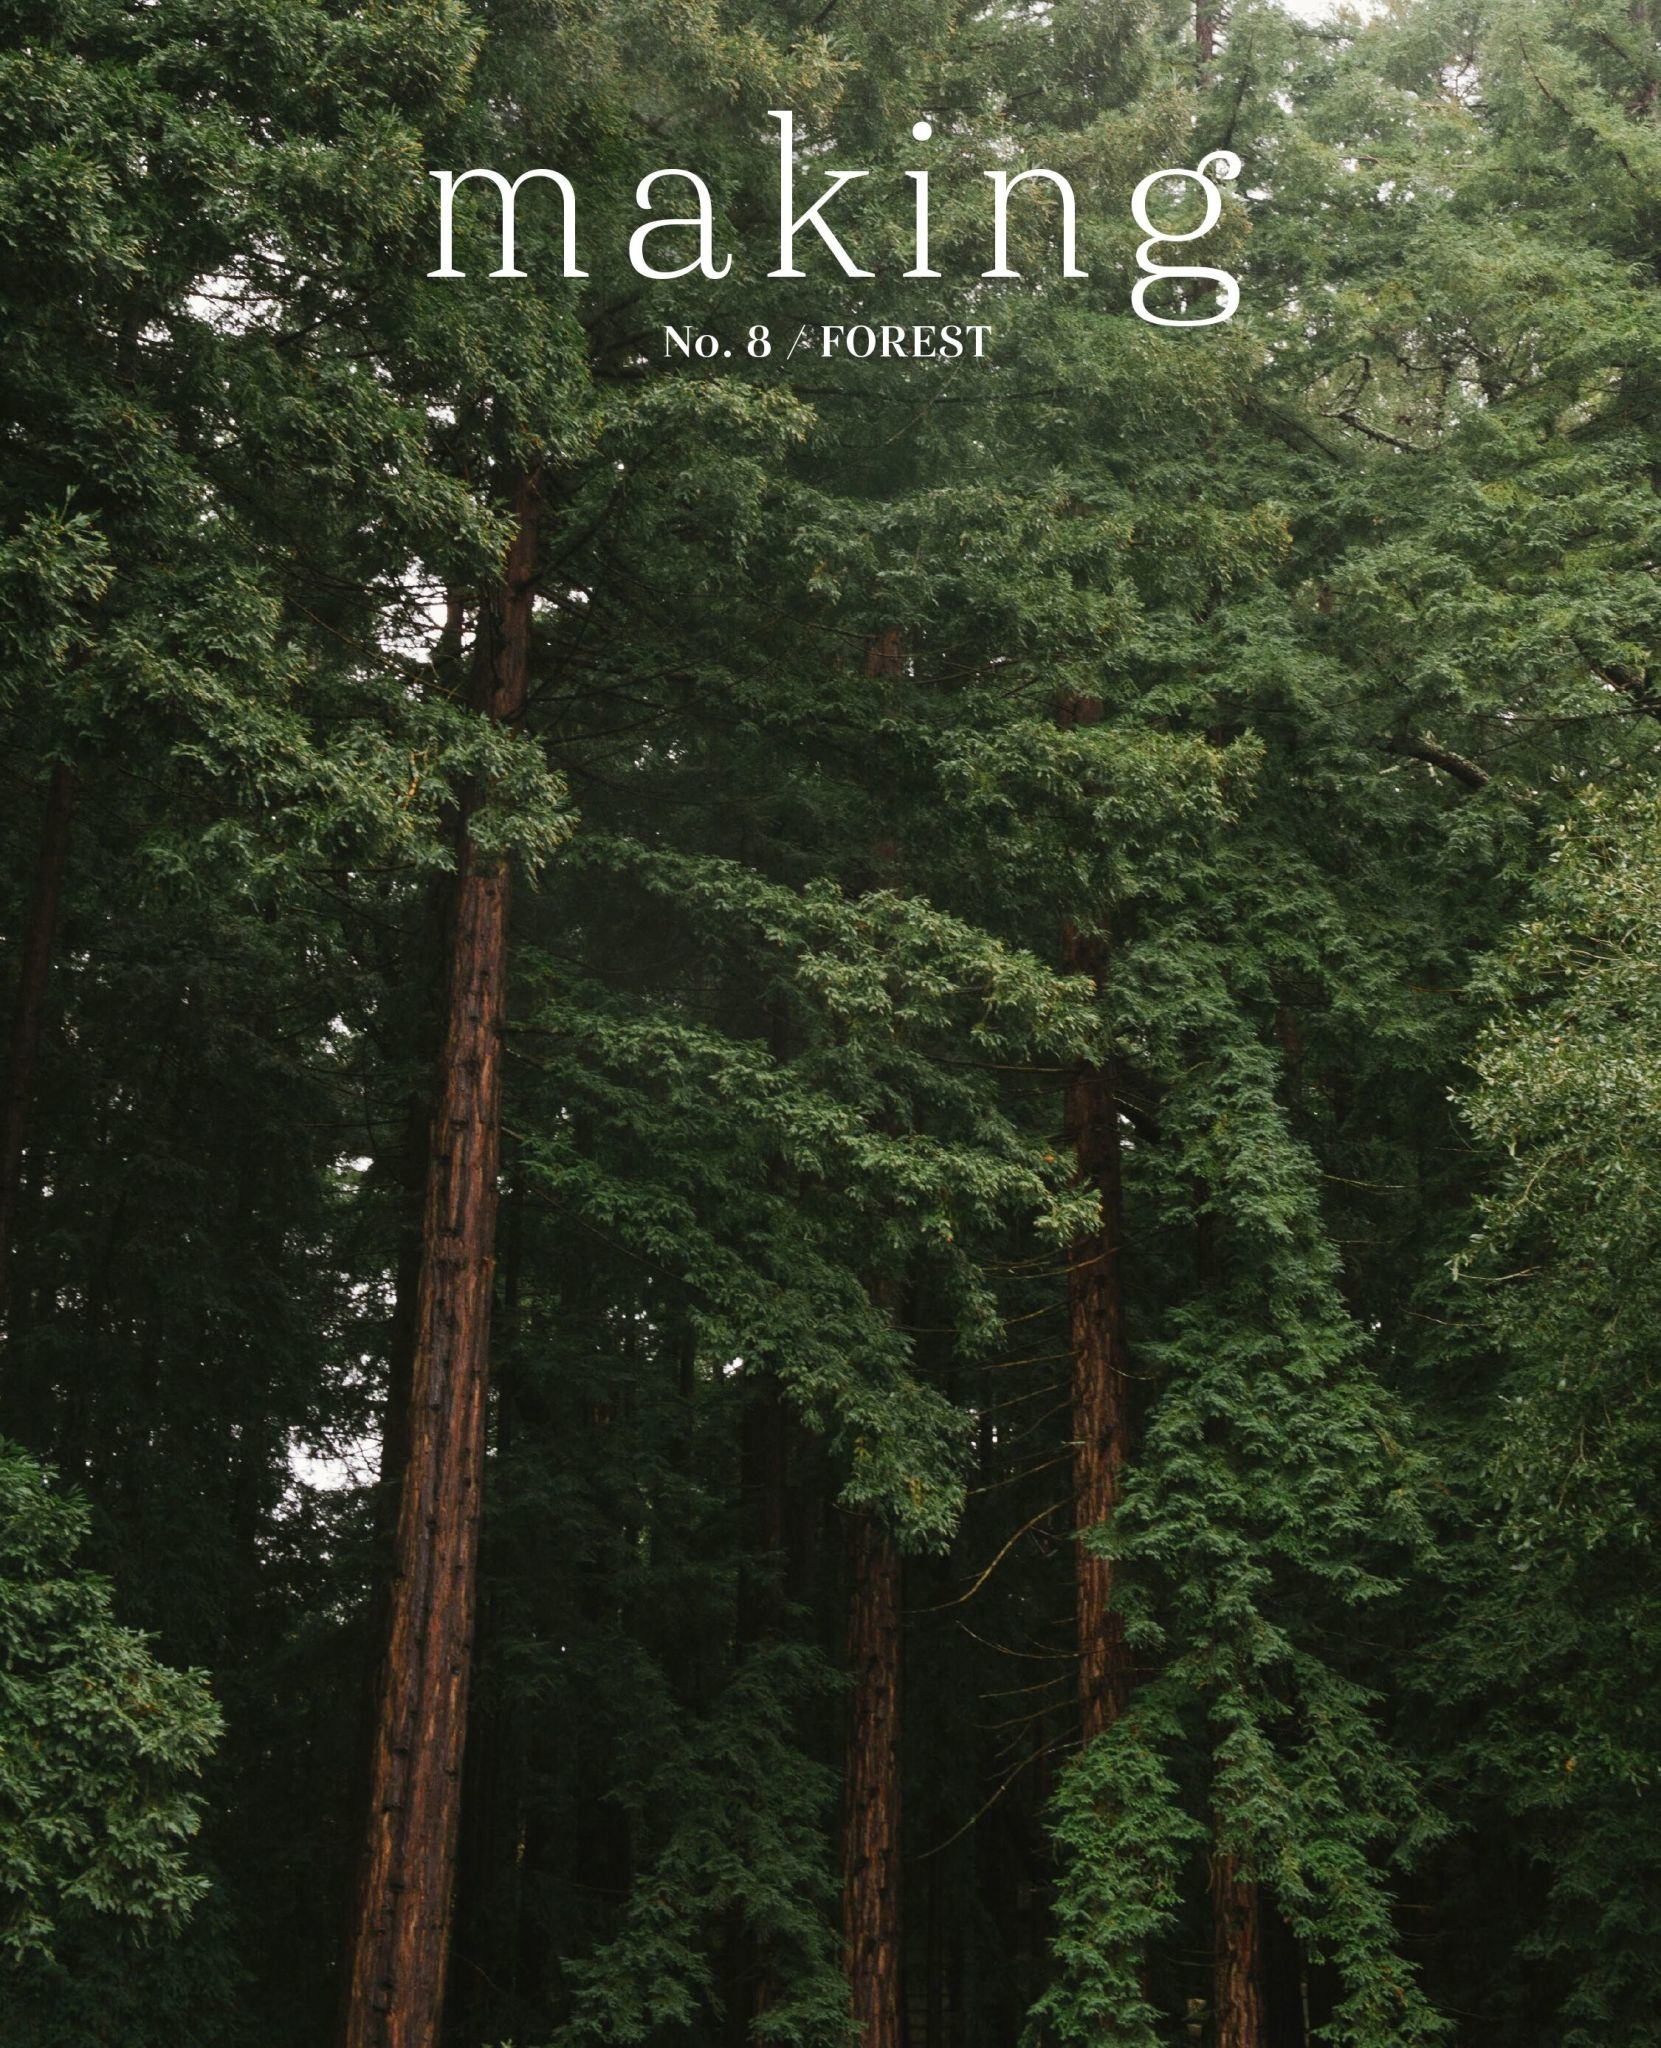 Making Magazine No 8 / Forest